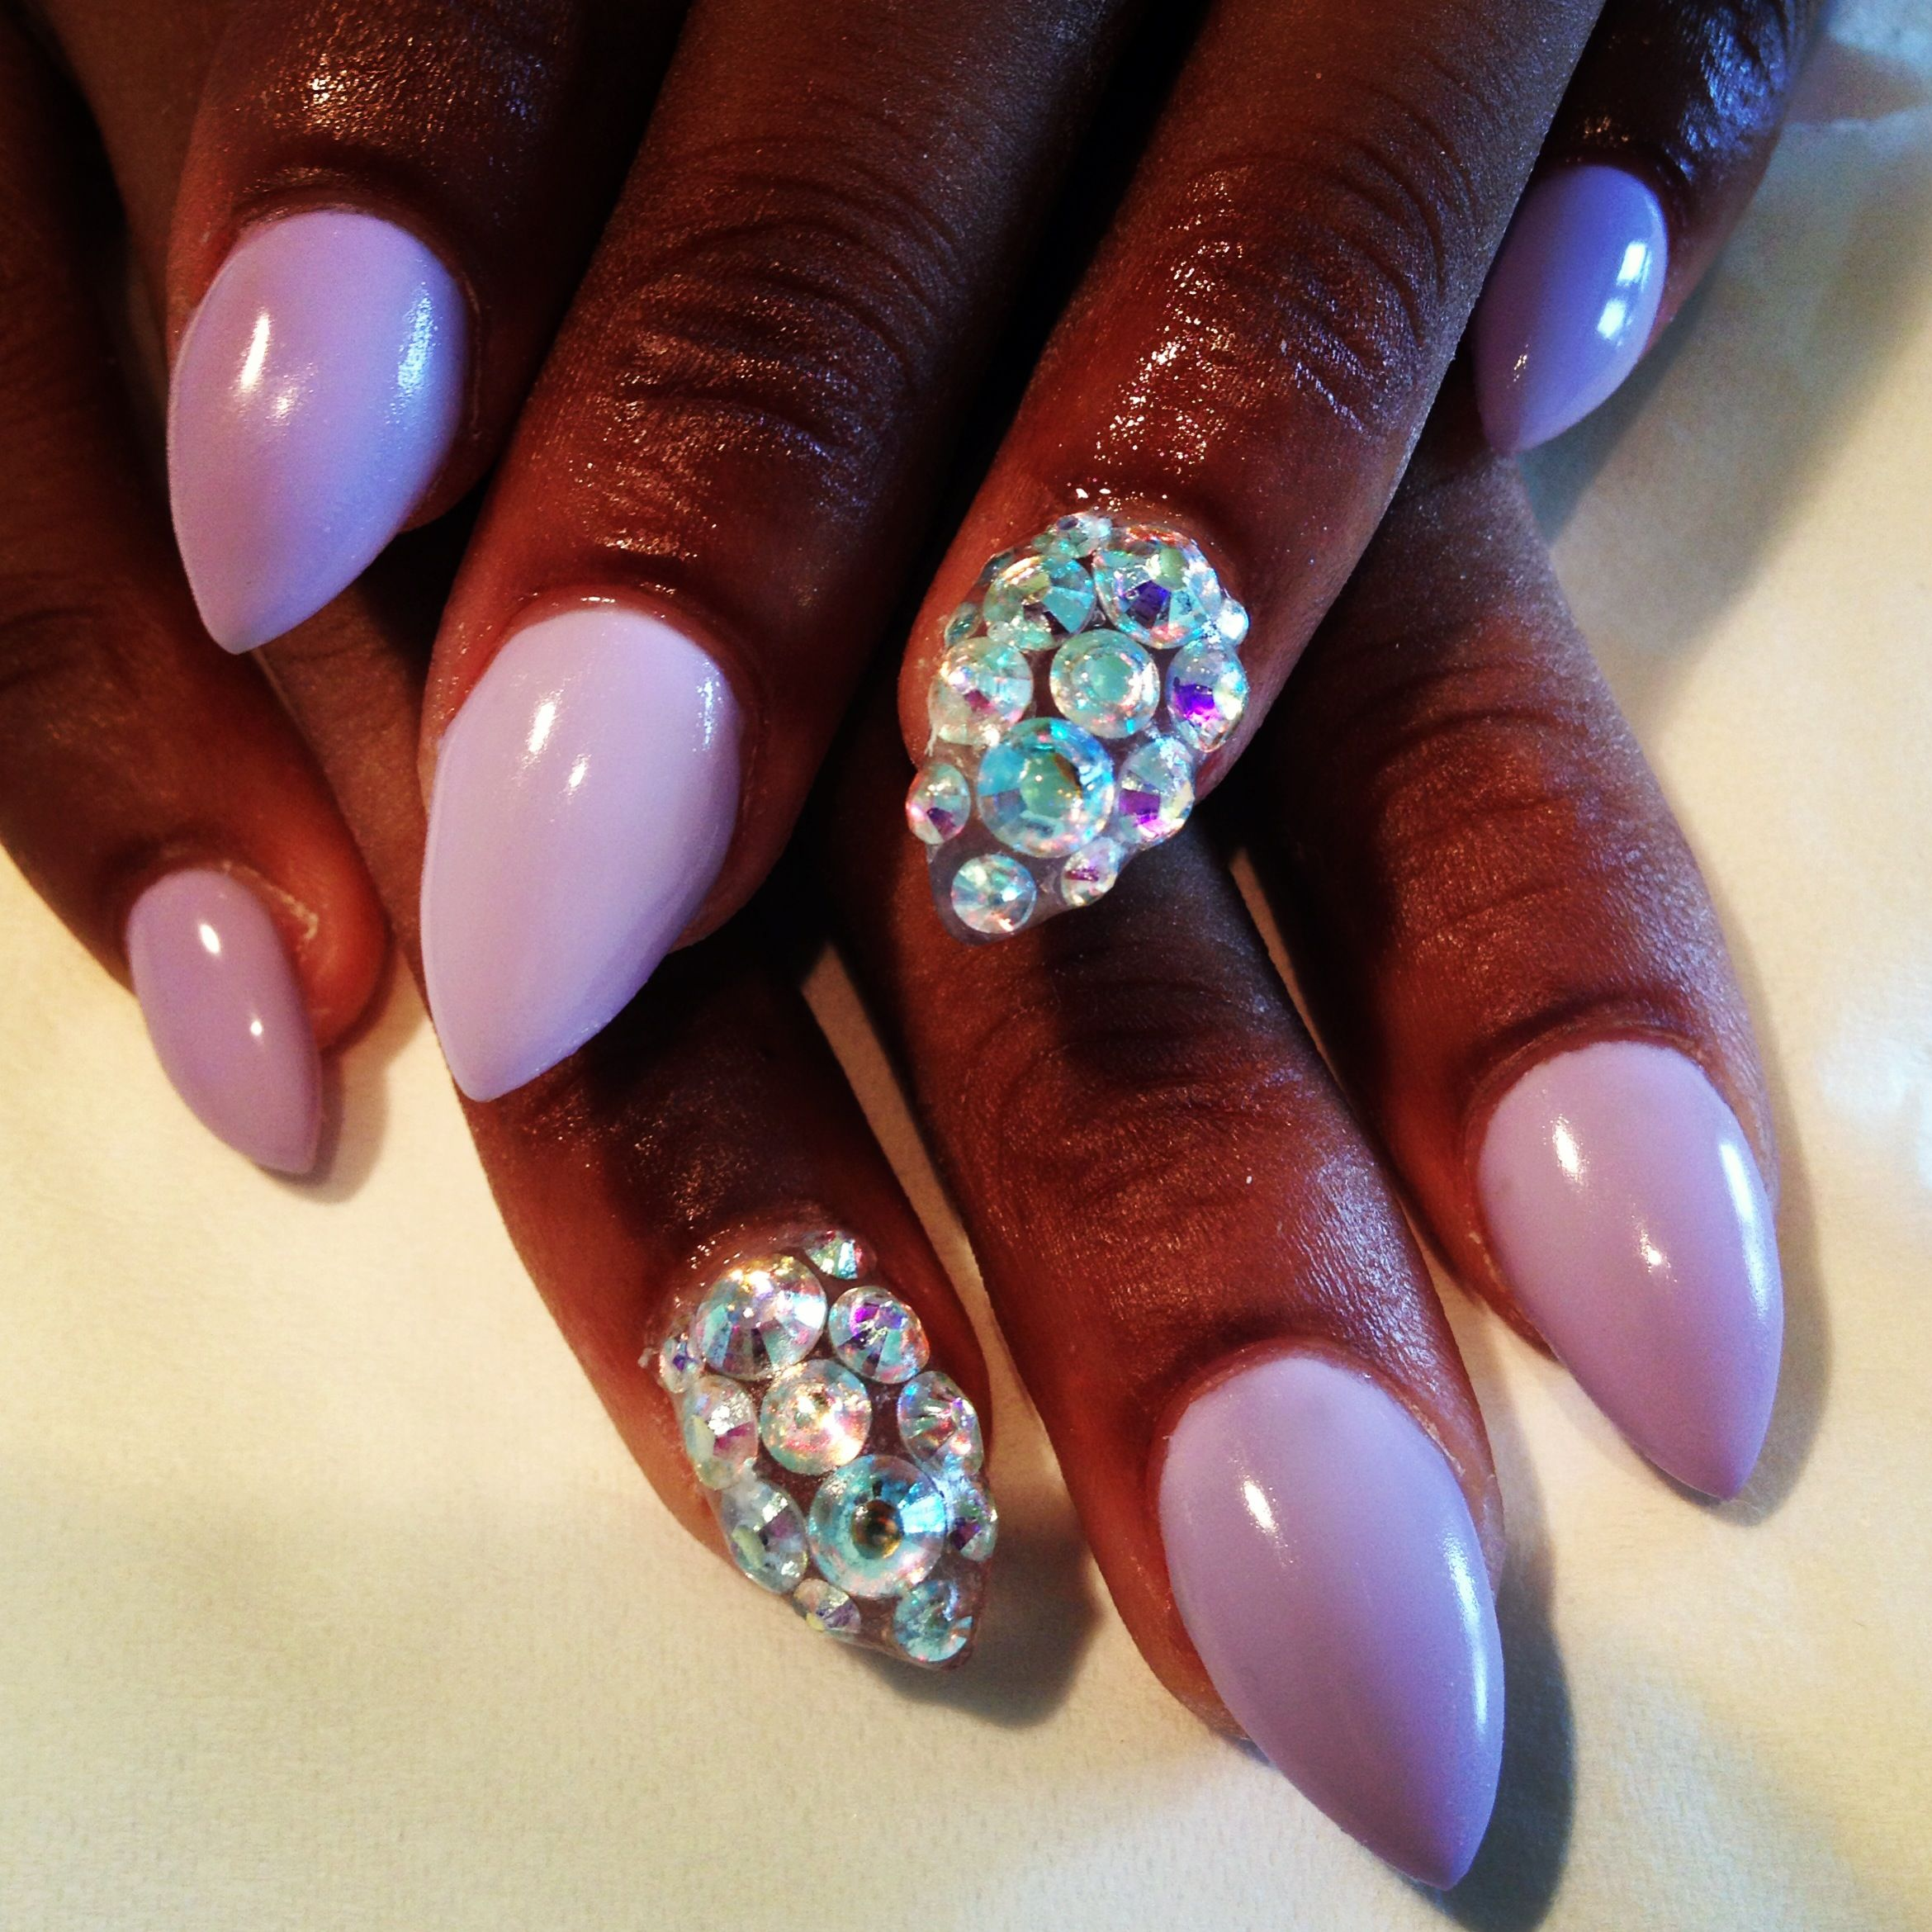 All nails and Gel extensions and nail art done by Classy Claws ...